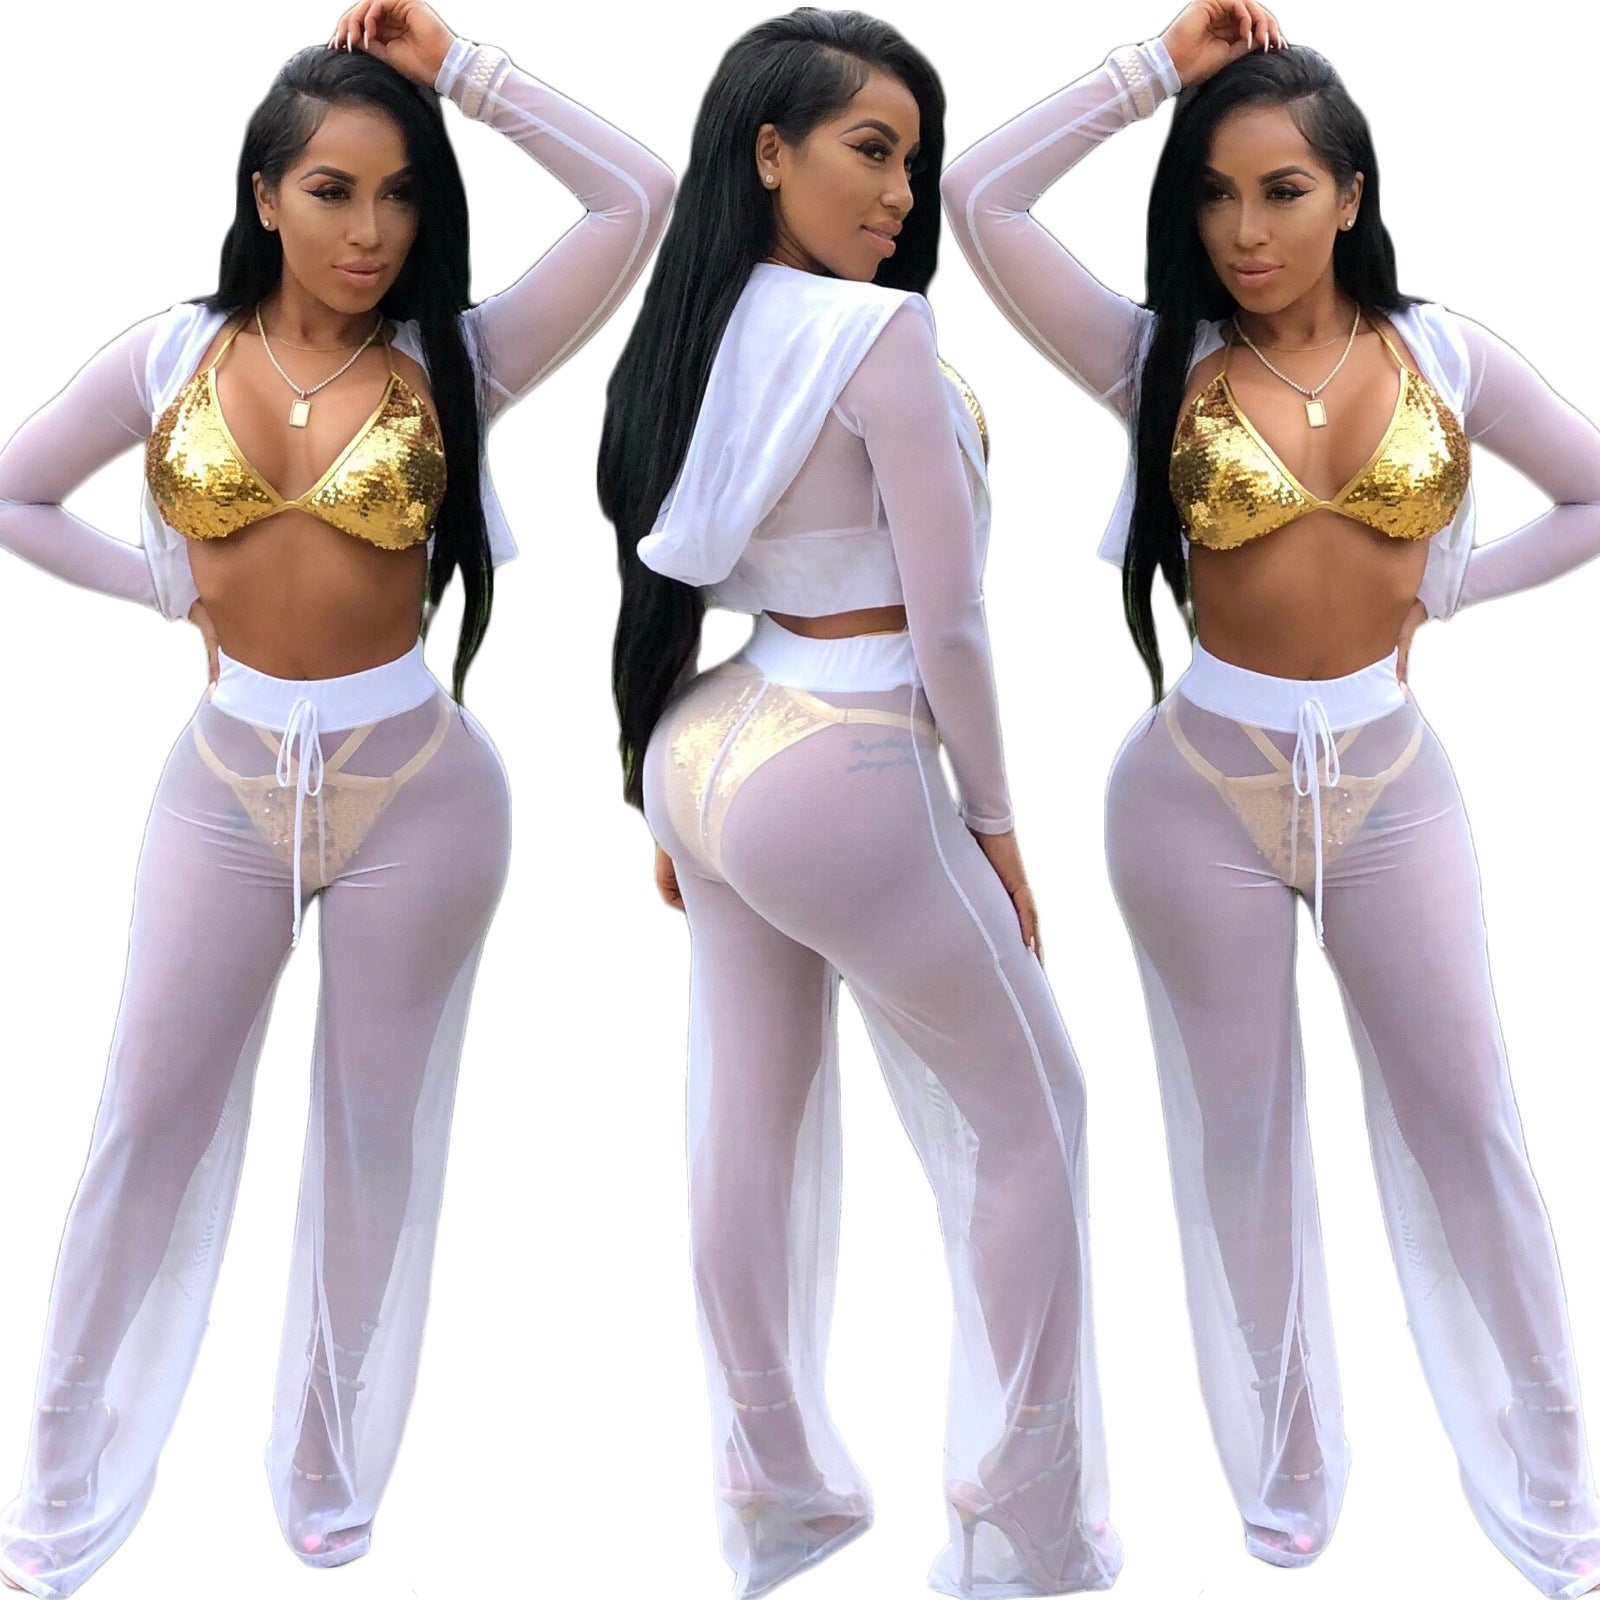 Selena Mesh Hoodie Cover Up Two Piece Set - White